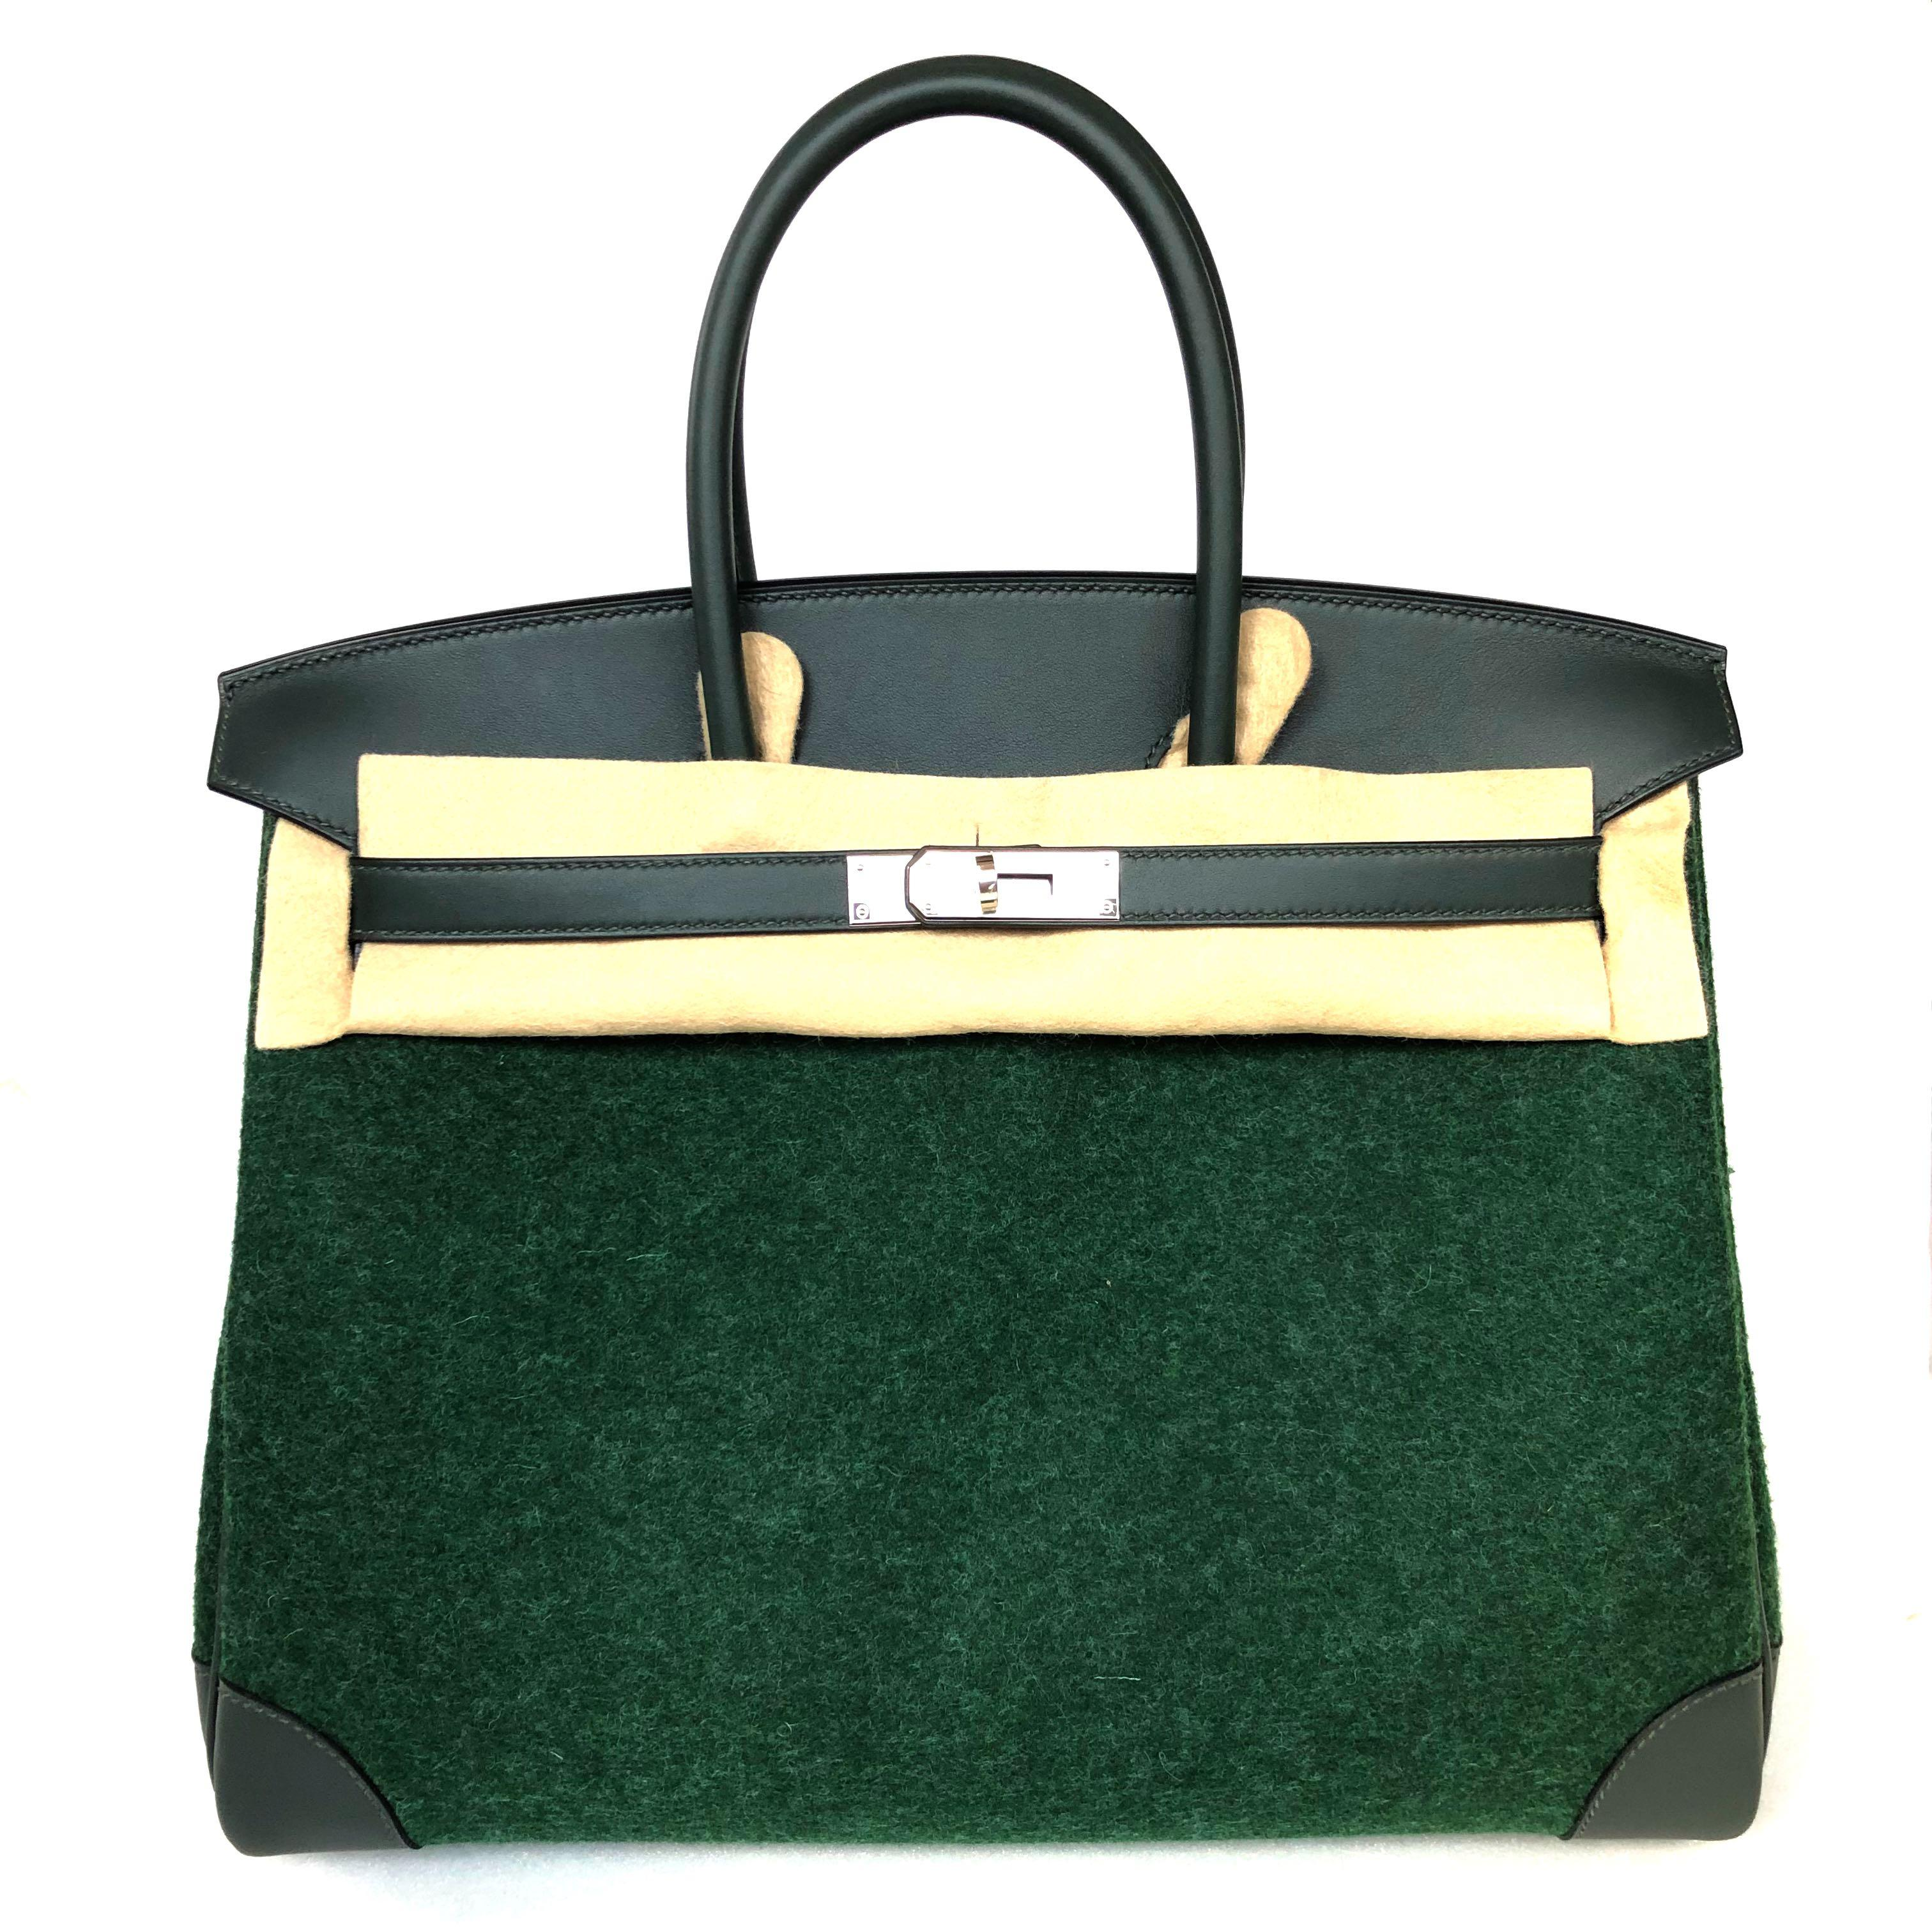 Hermes - Limited Edition Runway Vert Anglaise / Vert Cypress Birkin 35 in Feutre De Laine with PHW